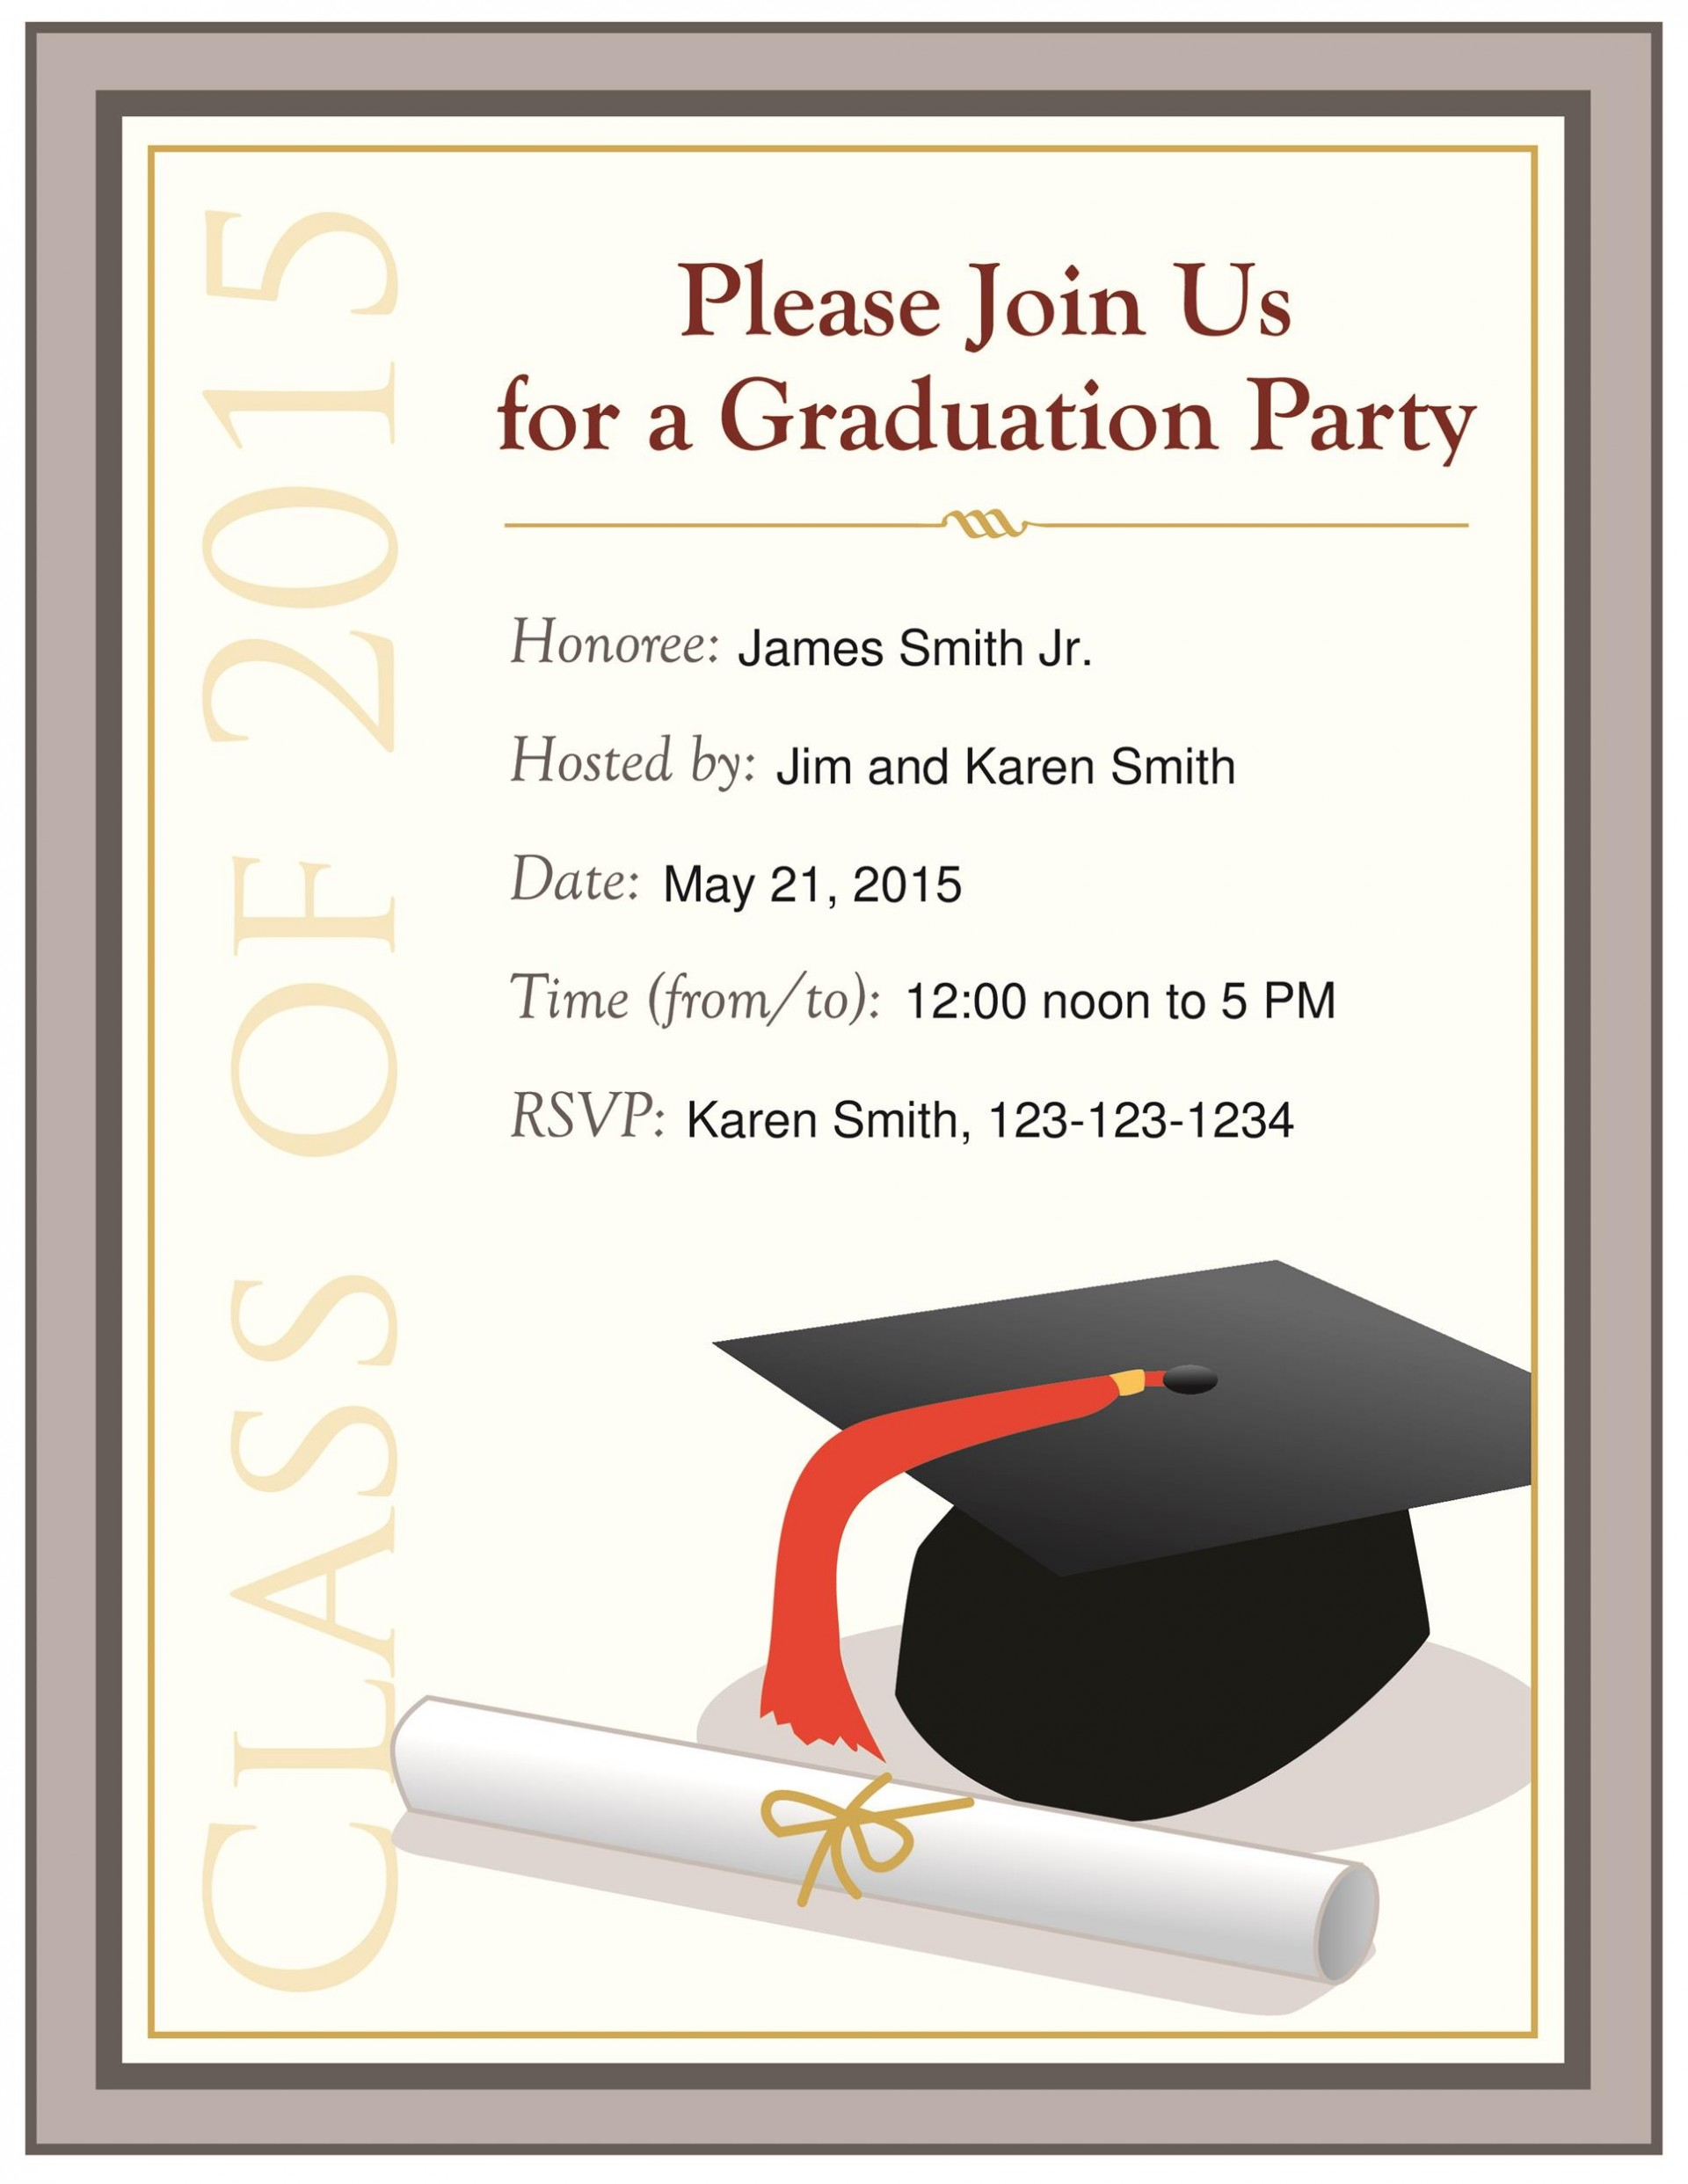 005 Archaicawful Graduation Party Invitation Template Idea  Microsoft Word 4 Per Page1920